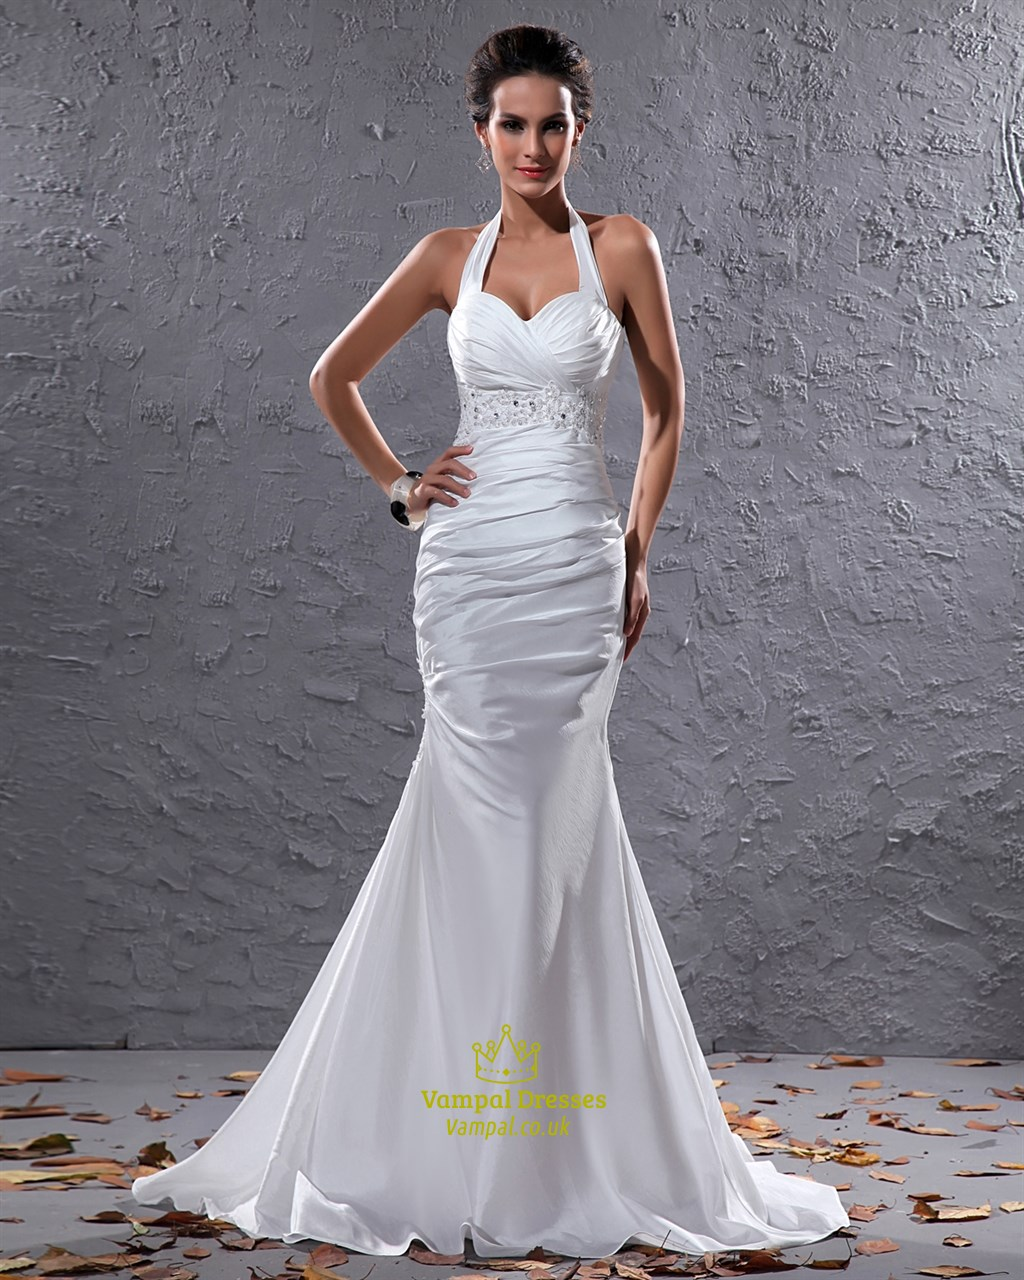 Elegant White Halter Neck Floor Length Lace Embellished